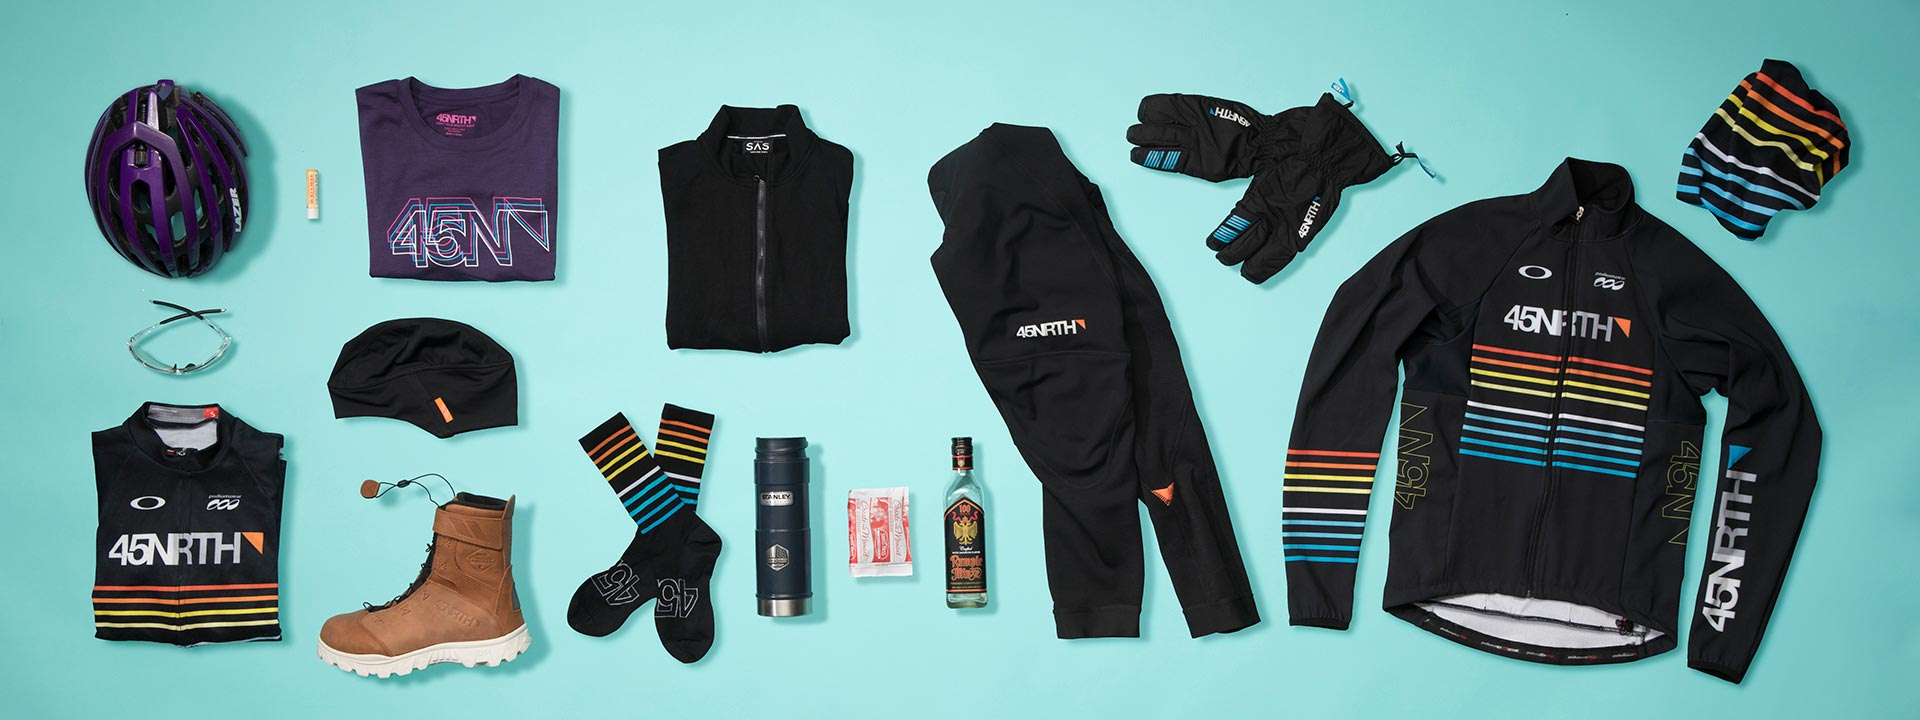 A group of 45NRTH products that cyclists should wear when riding in weather below 15 degrees